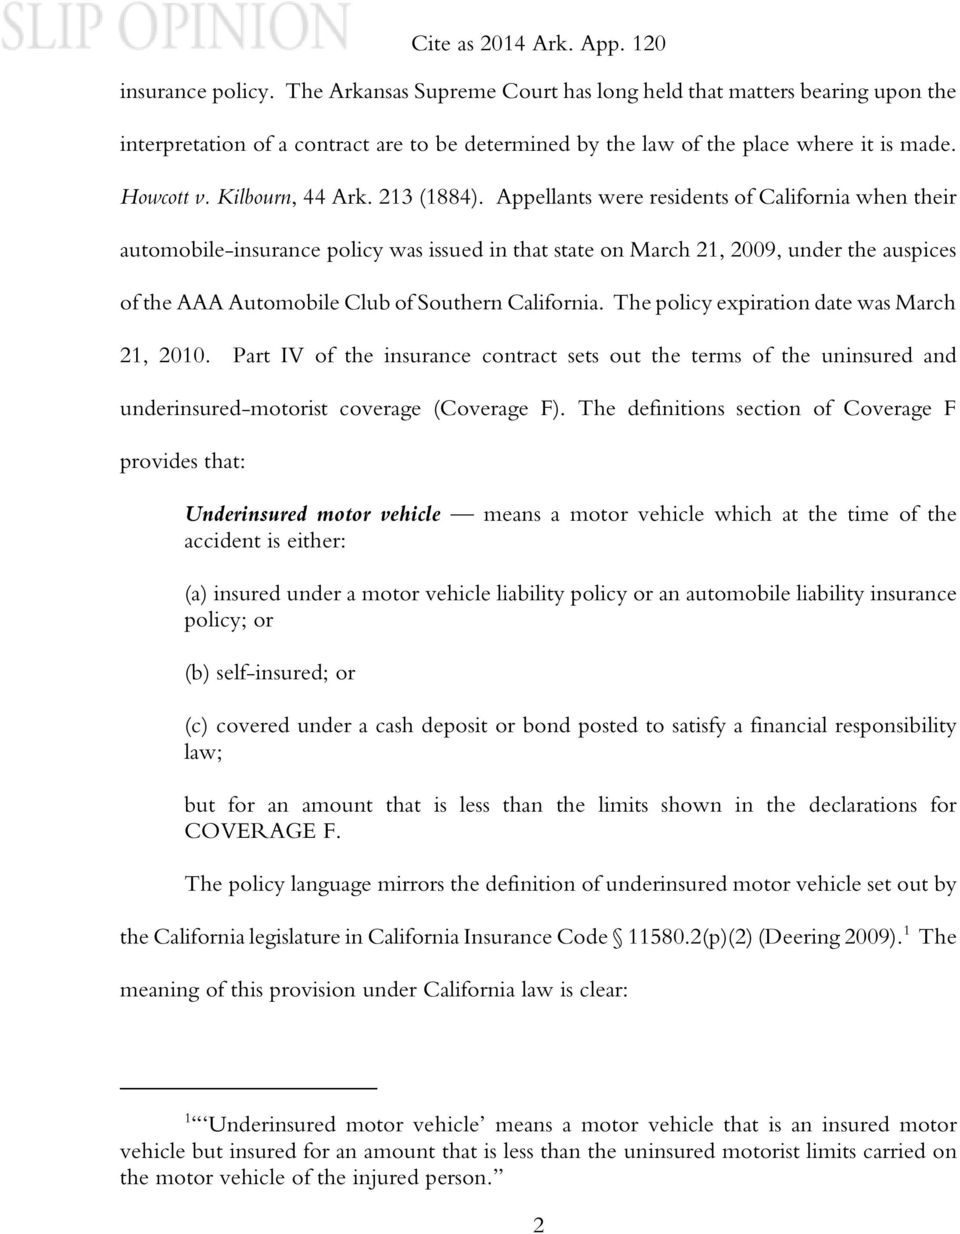 Appellants were residents of California when their automobile-insurance policy was issued in that state on March 21, 2009, under the auspices of the AAA Automobile Club of Southern California.